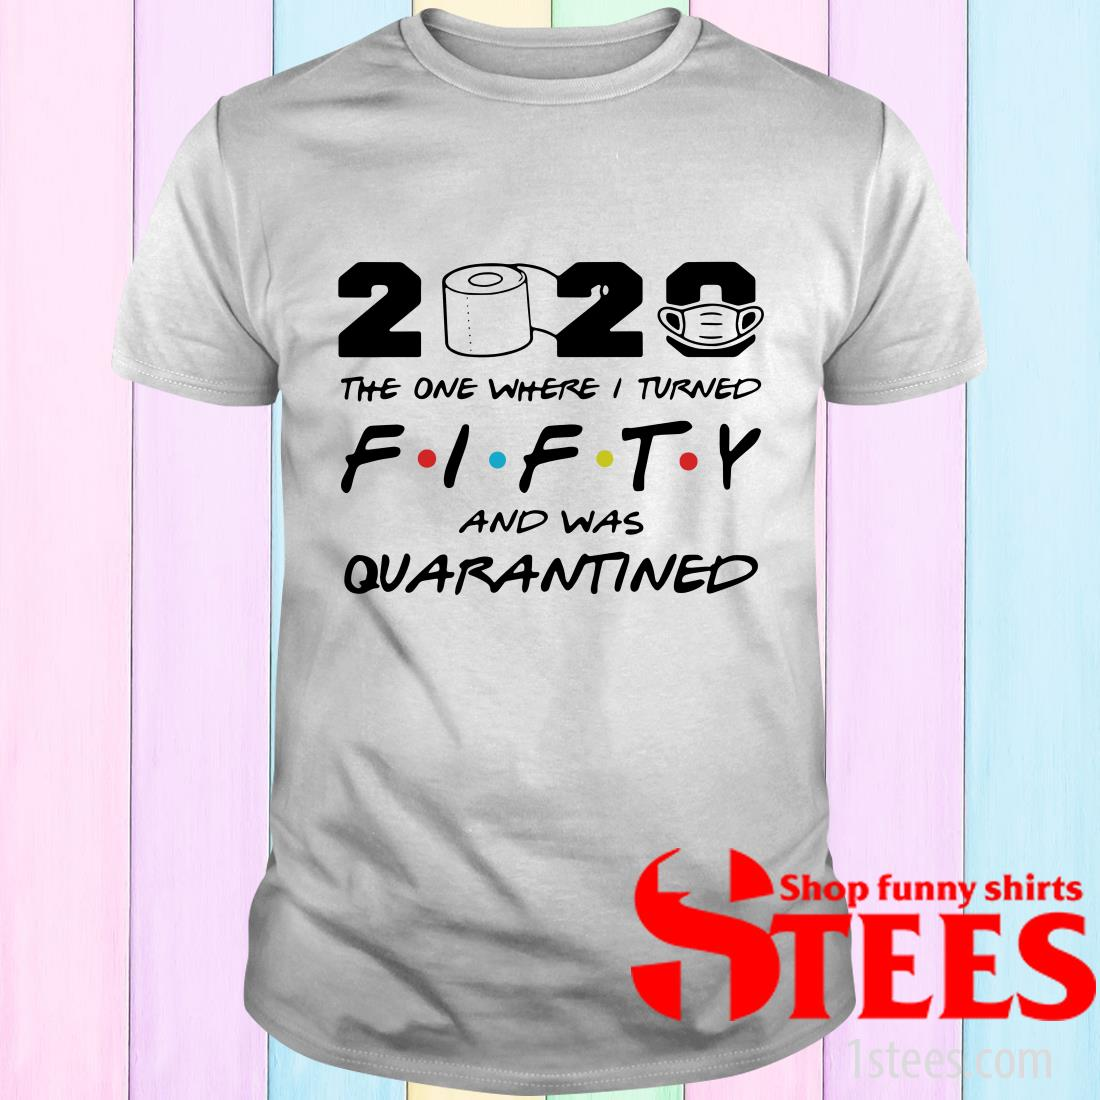 2020 The One Where I Turned Fifty And Was Quarantined T-Shirt